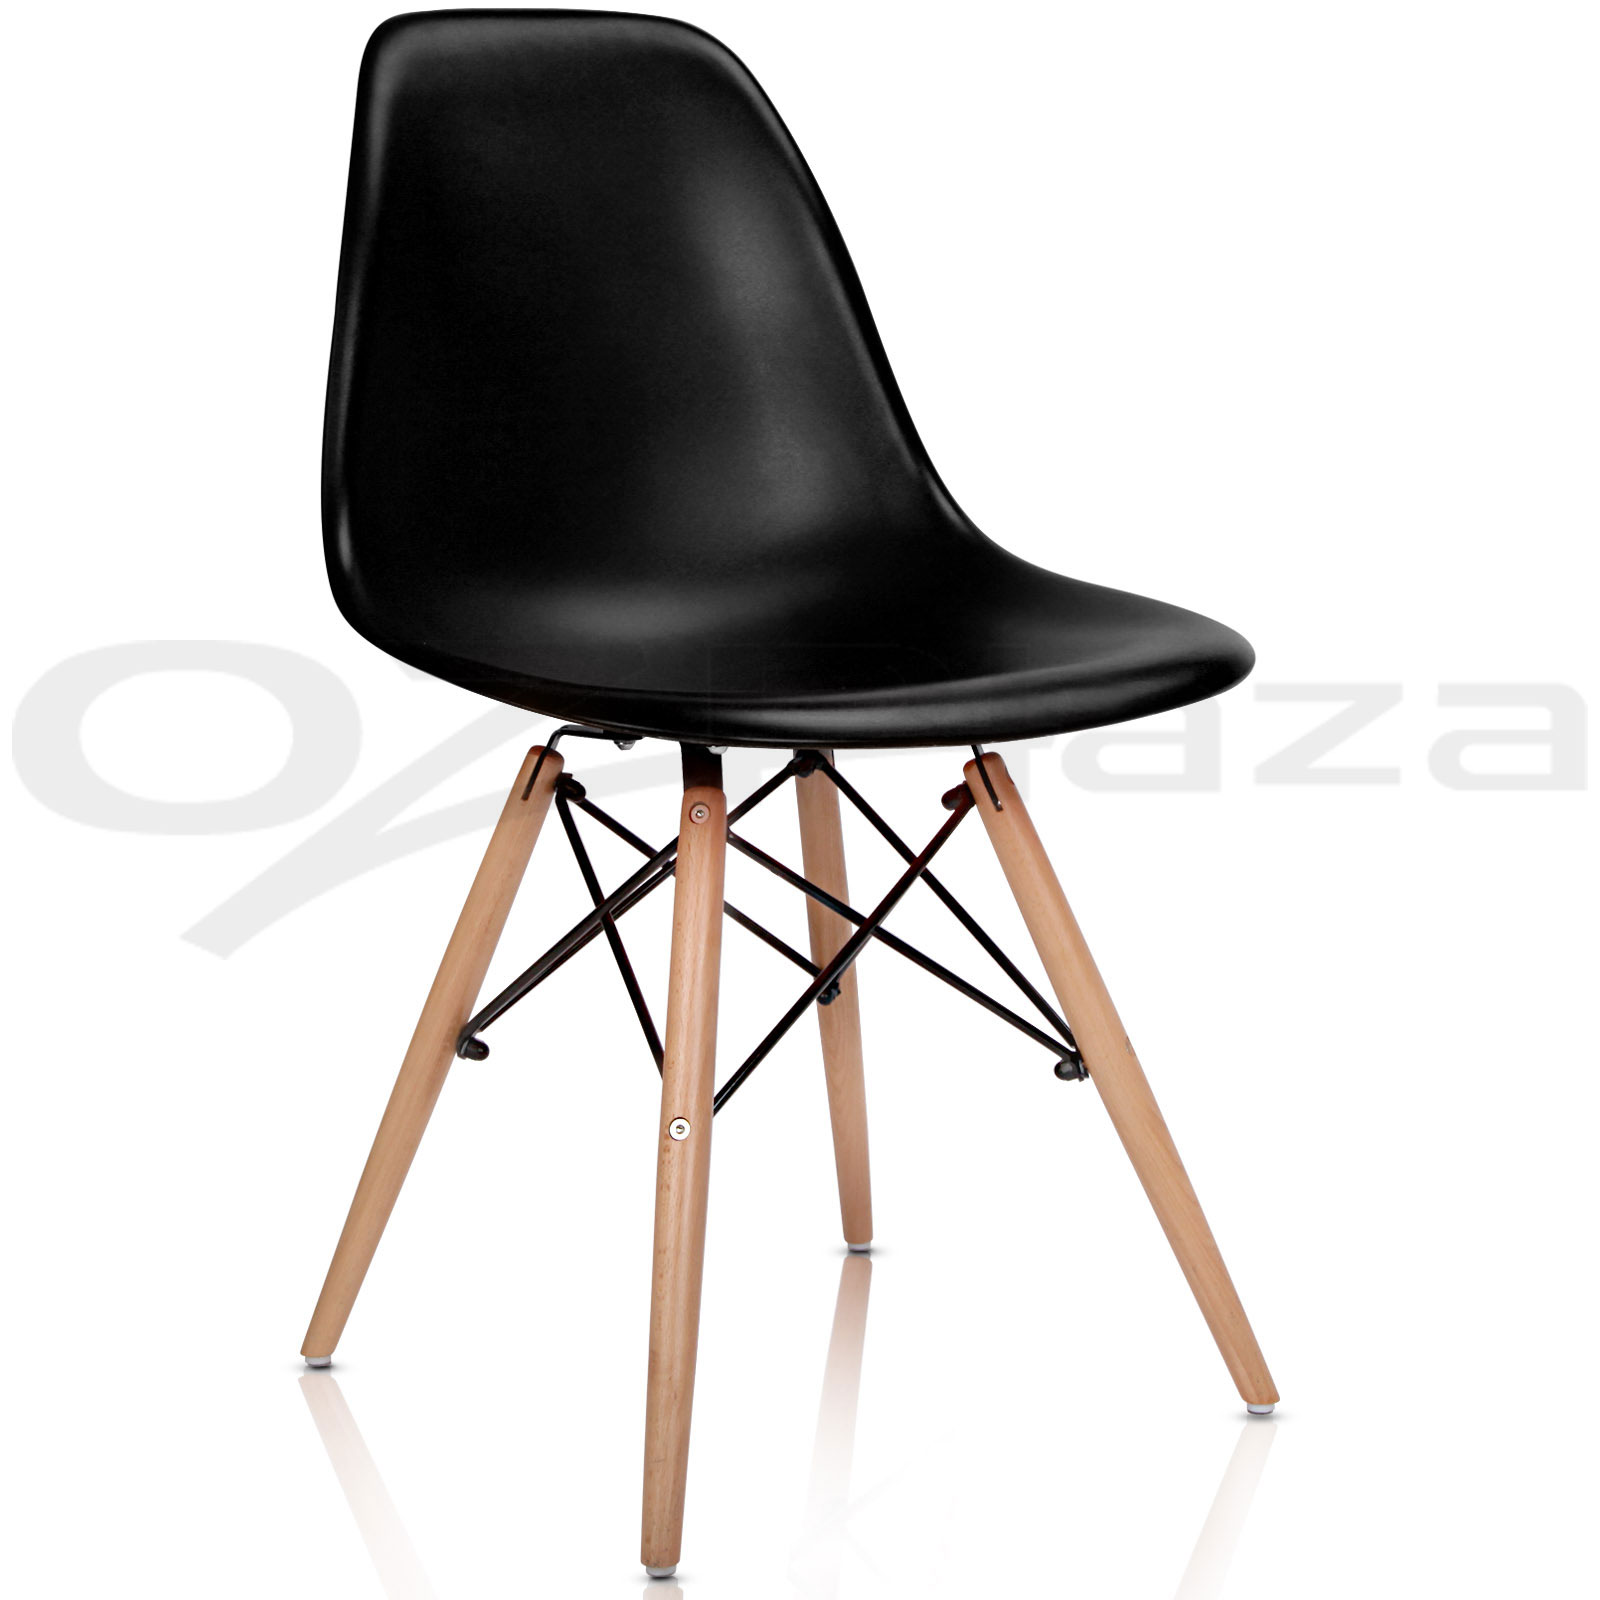 1x wooden dining table 4x eames replica dsw retro dining chairs bk 3